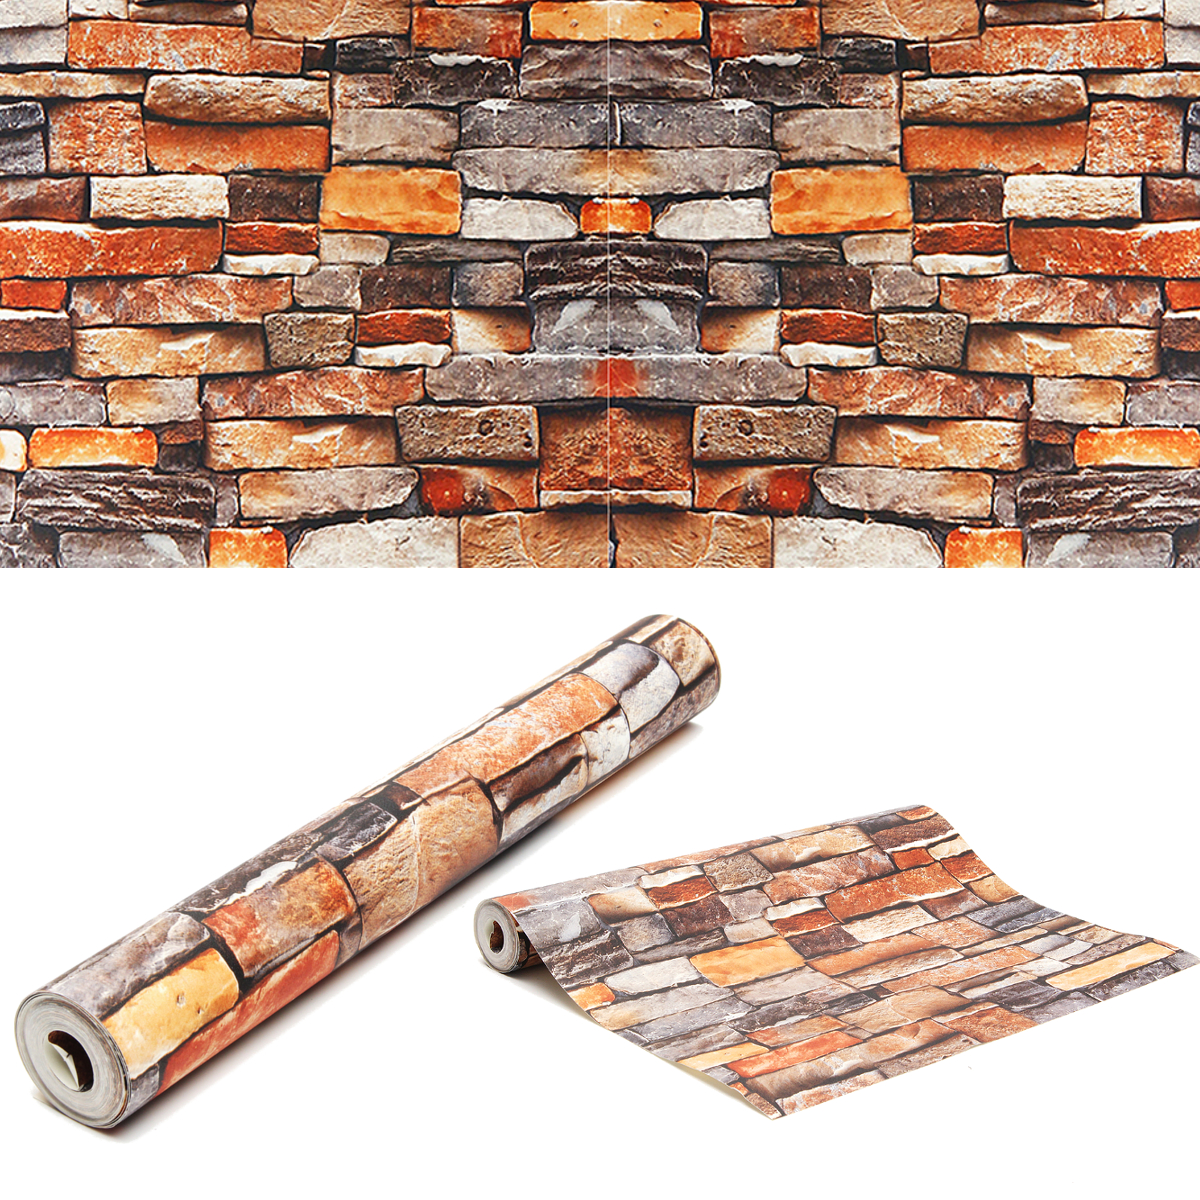 Retro 3D Brick Wallpaper Roll Rustic Vintage Vinyl Old Stone Wall Paper For Home Living Room Restaurant Cafe Decor 0.53x9.5m stone brick 3d wallpaper bedroom living room background wall vinyl retro wall paper roll rustic faux stone wallpapers